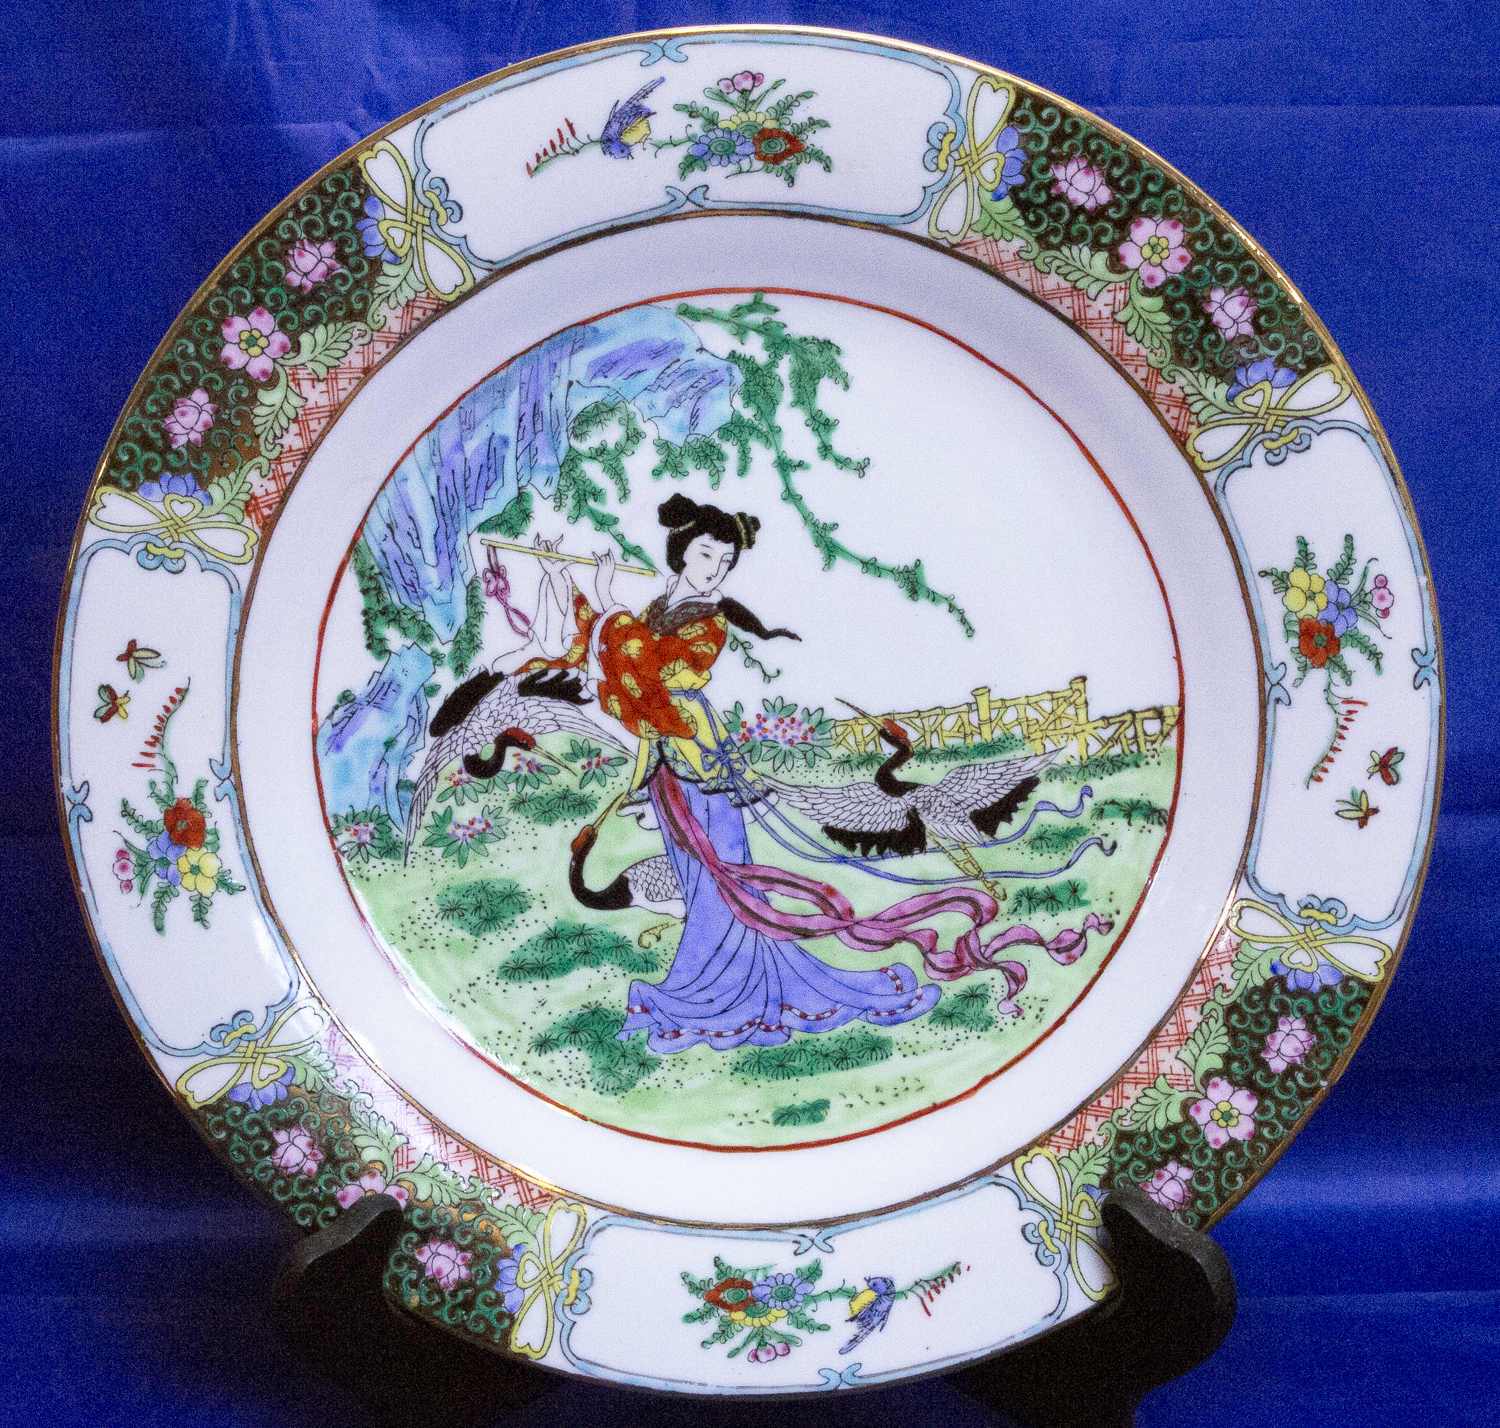 Hand Painted Plates : Beautiful large hand painted decorated porcelain plate